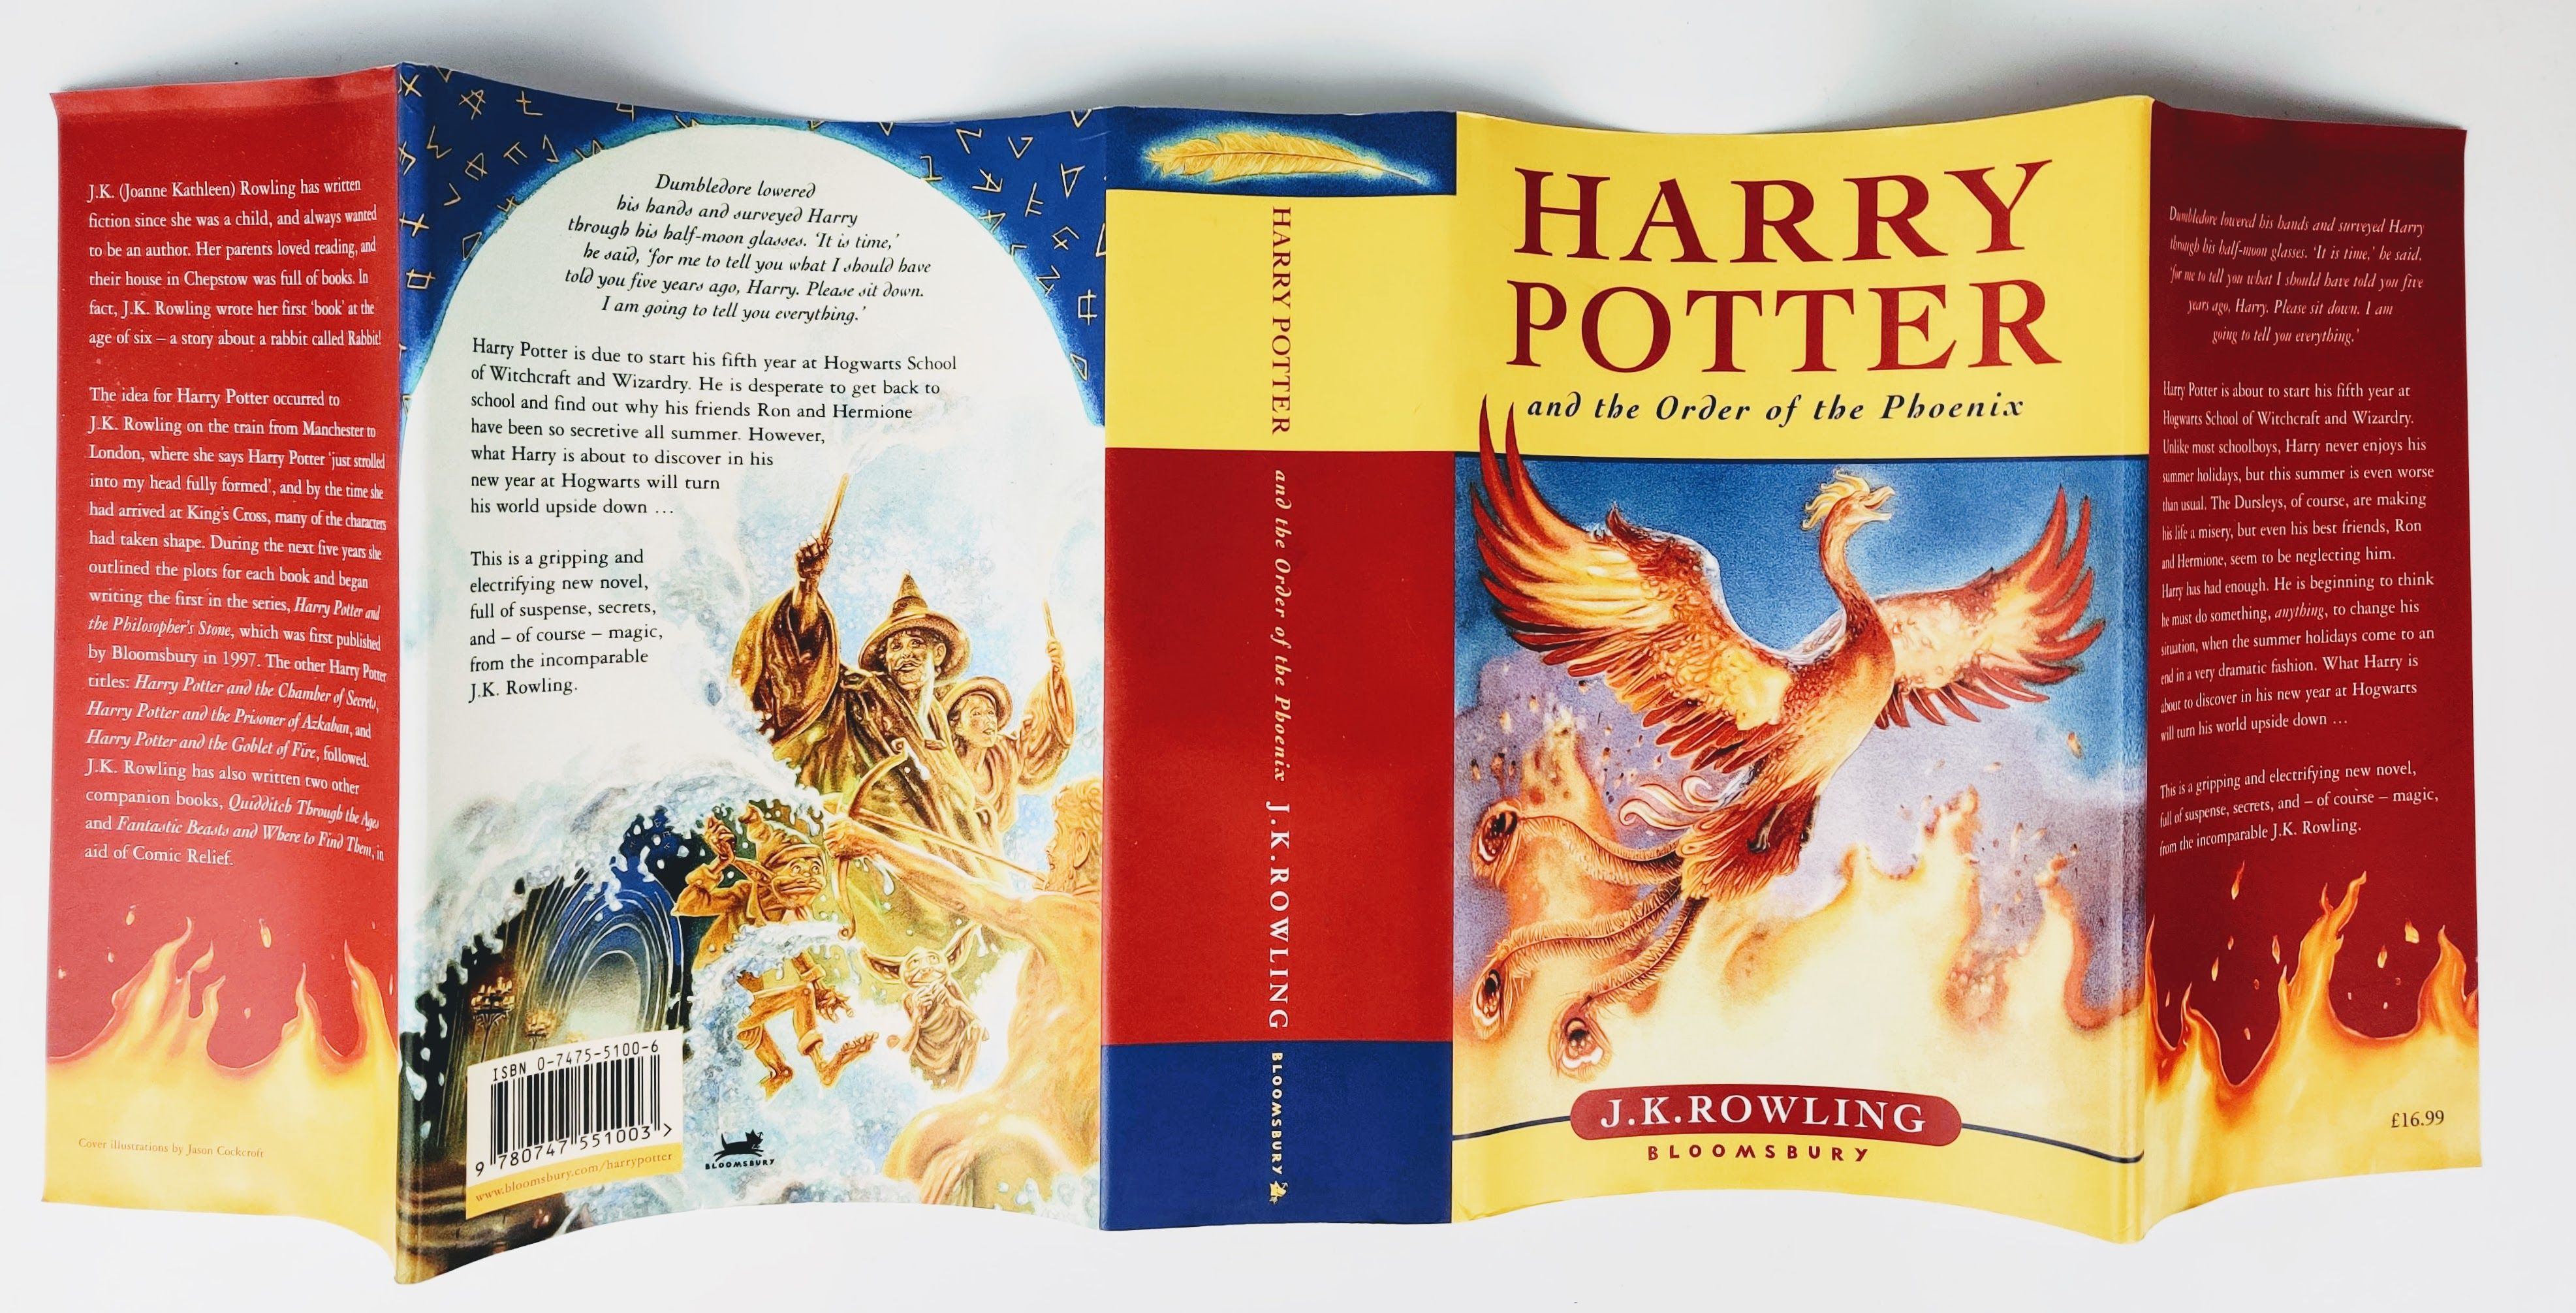 Harry Potter and the Order of the Phoenix (photo 4)